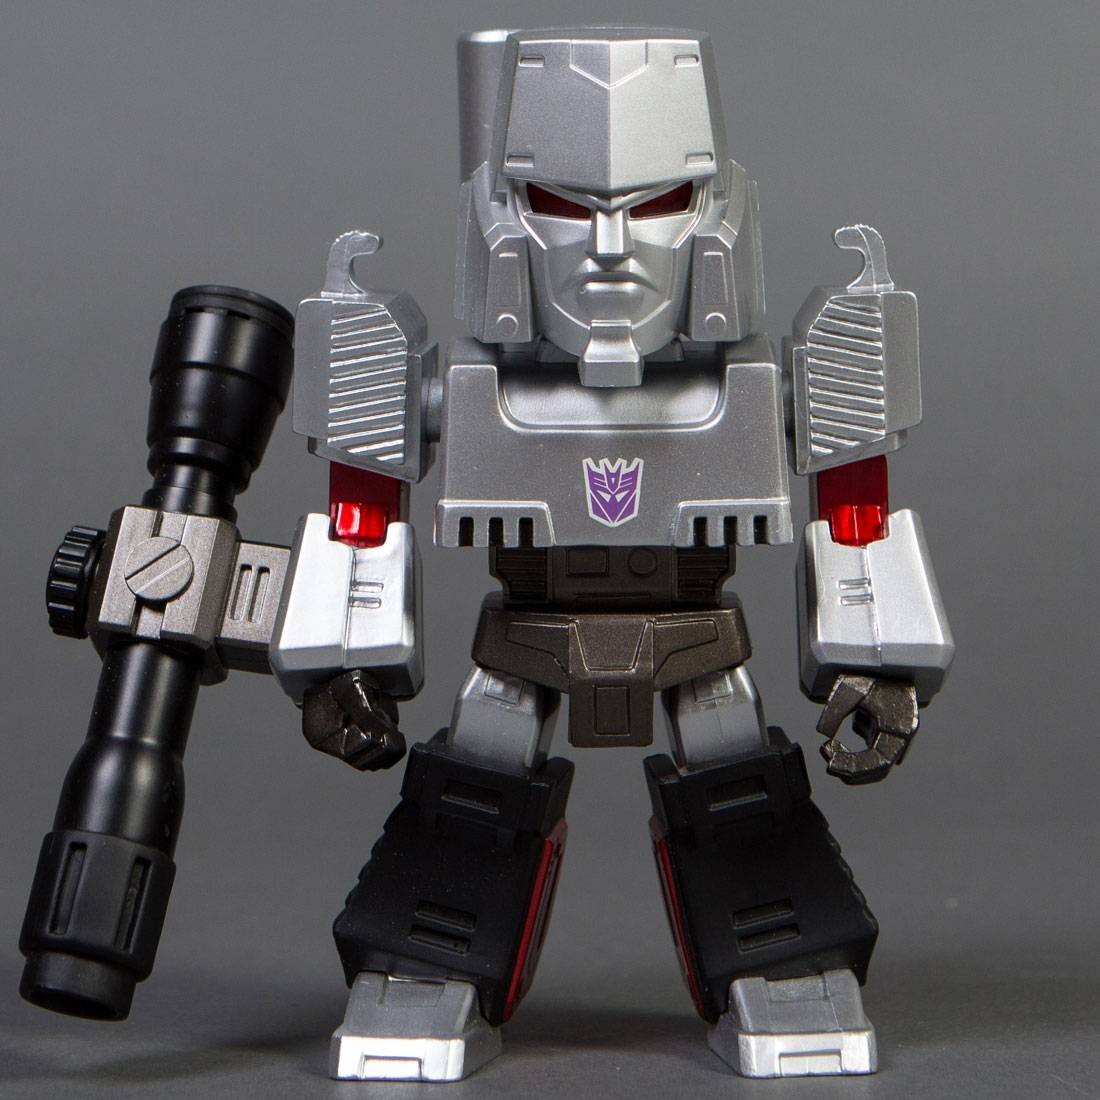 BAIT x Transformers x Switch Collectibles Megatron 6.5 Inch Figure - Original Edition